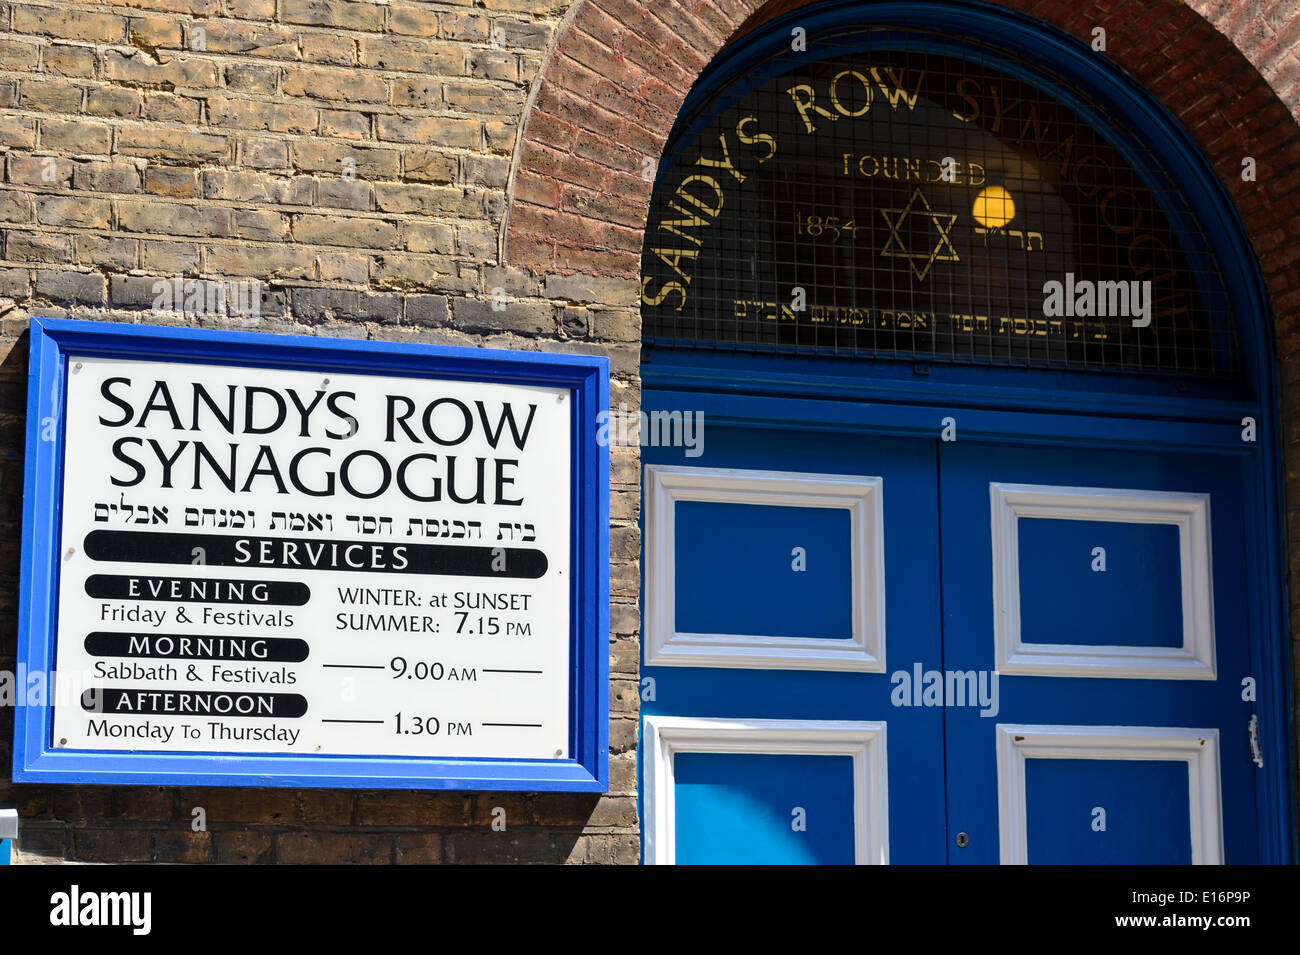 Sanday's Row Synagogue is a historic Grade II listed building synagogue in the East End of London. - Stock Image